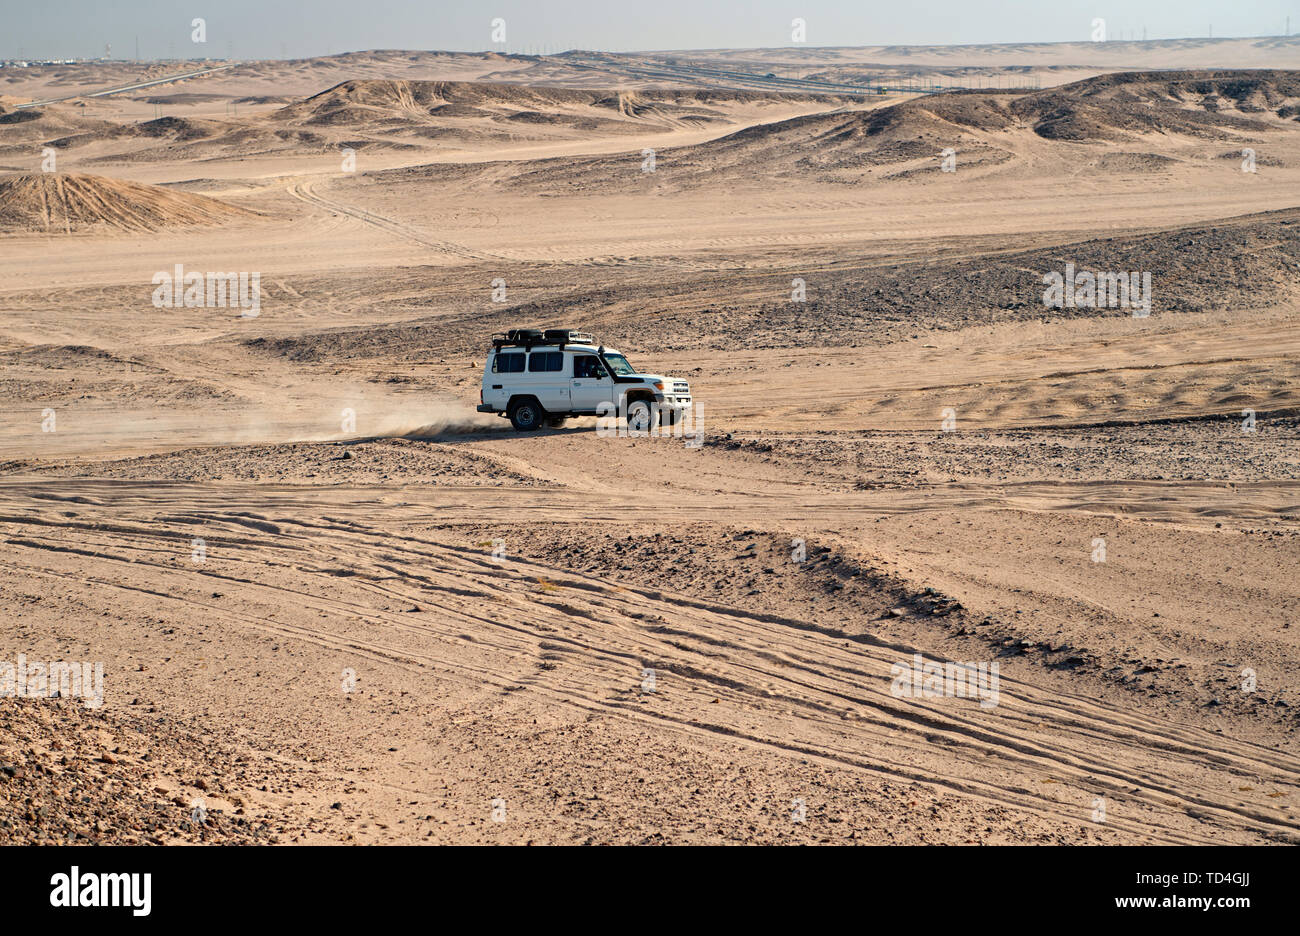 Race in sand desert. Car suv overcomes sand dunes obstacles. Competition racing challenge desert. Car drives offroad with clouds of dust. Offroad vehicle racing with obstacles in wilderness. - Stock Image